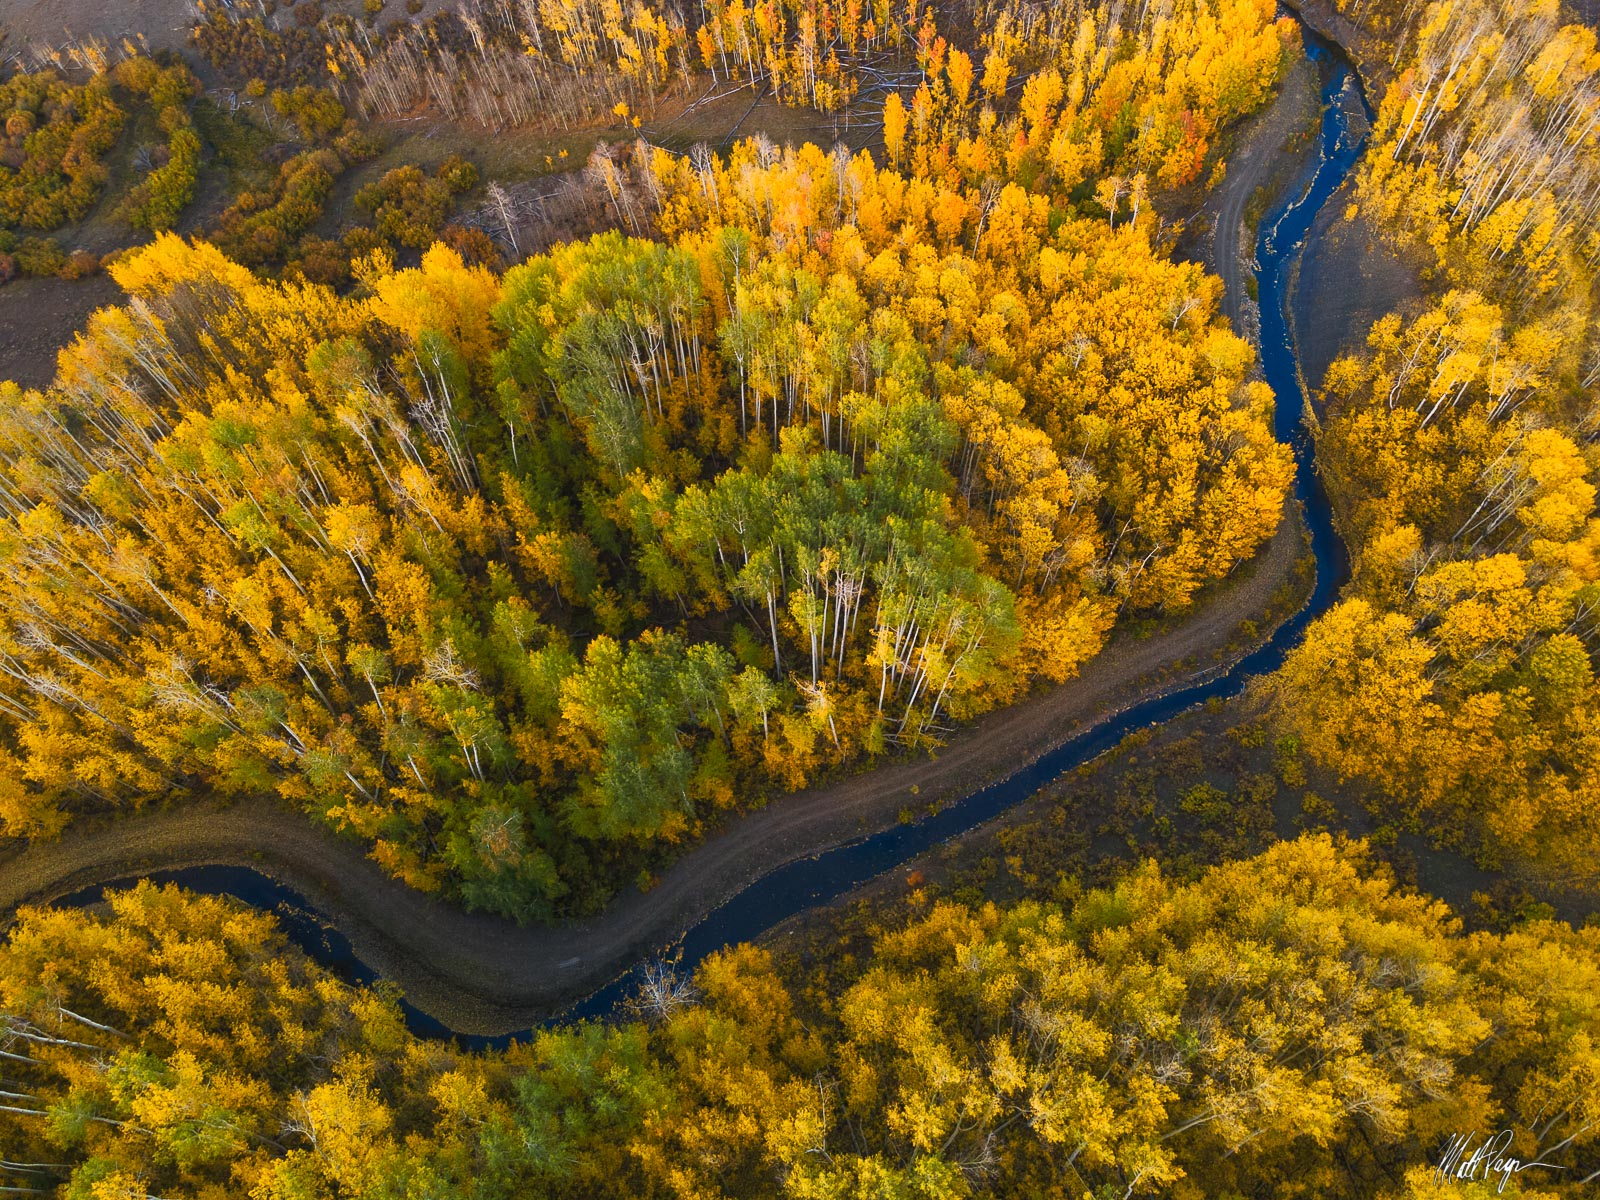 A cattle ditch winds through beautiful aspen trees adorned with yellow leaves in fall / autumn in the mountains of Colorado....